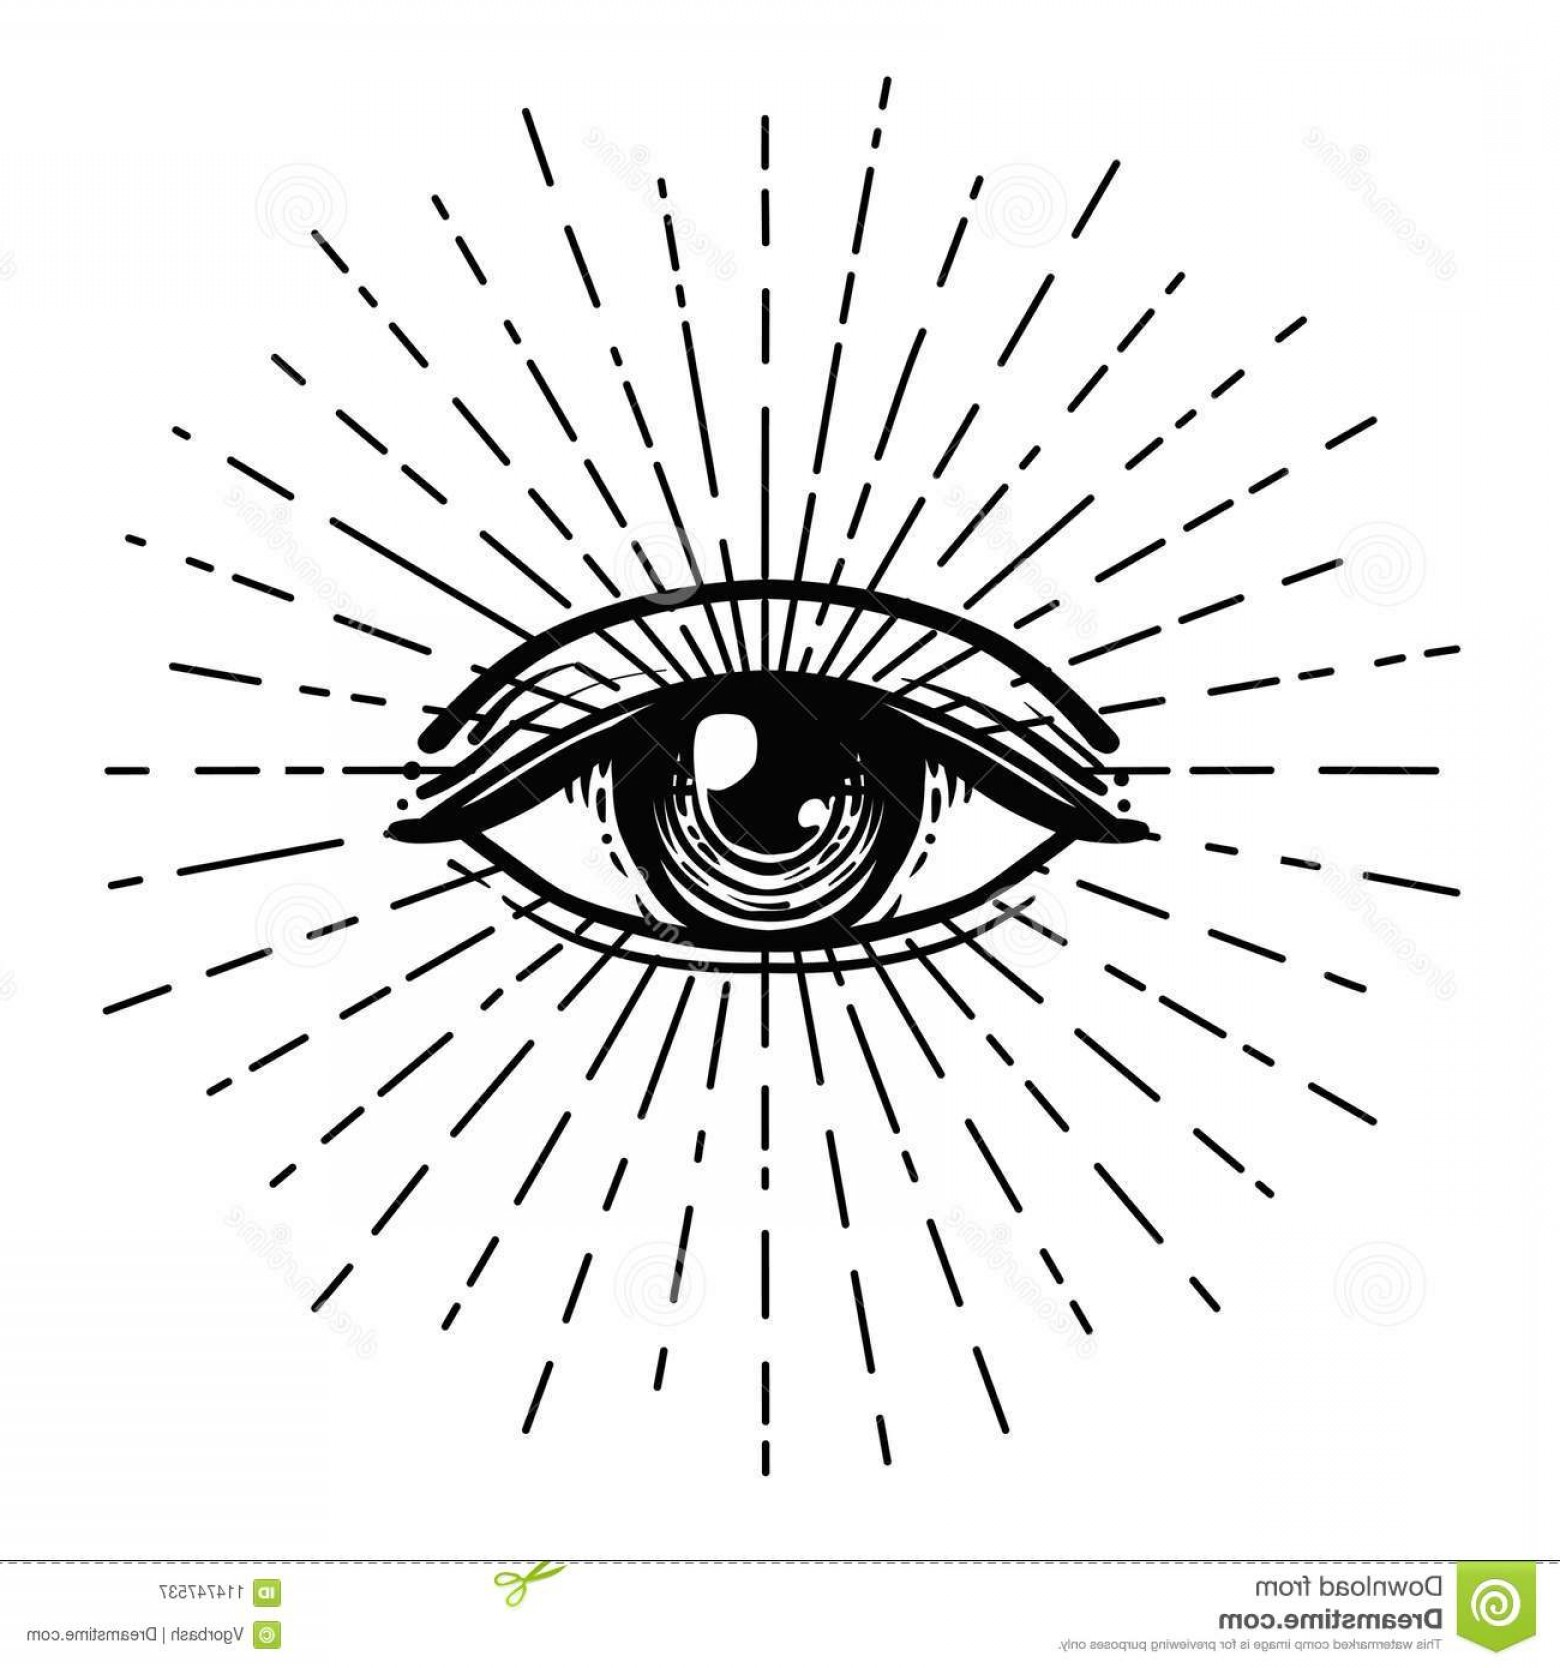 Pyramid With Eye Of Providence Vector: Tattoo Flash Eye Providence Masonic Symbol All Seeing Eye Blackwork Tattoo Flash Eye Providence Masonic Symbol All Seeing Image